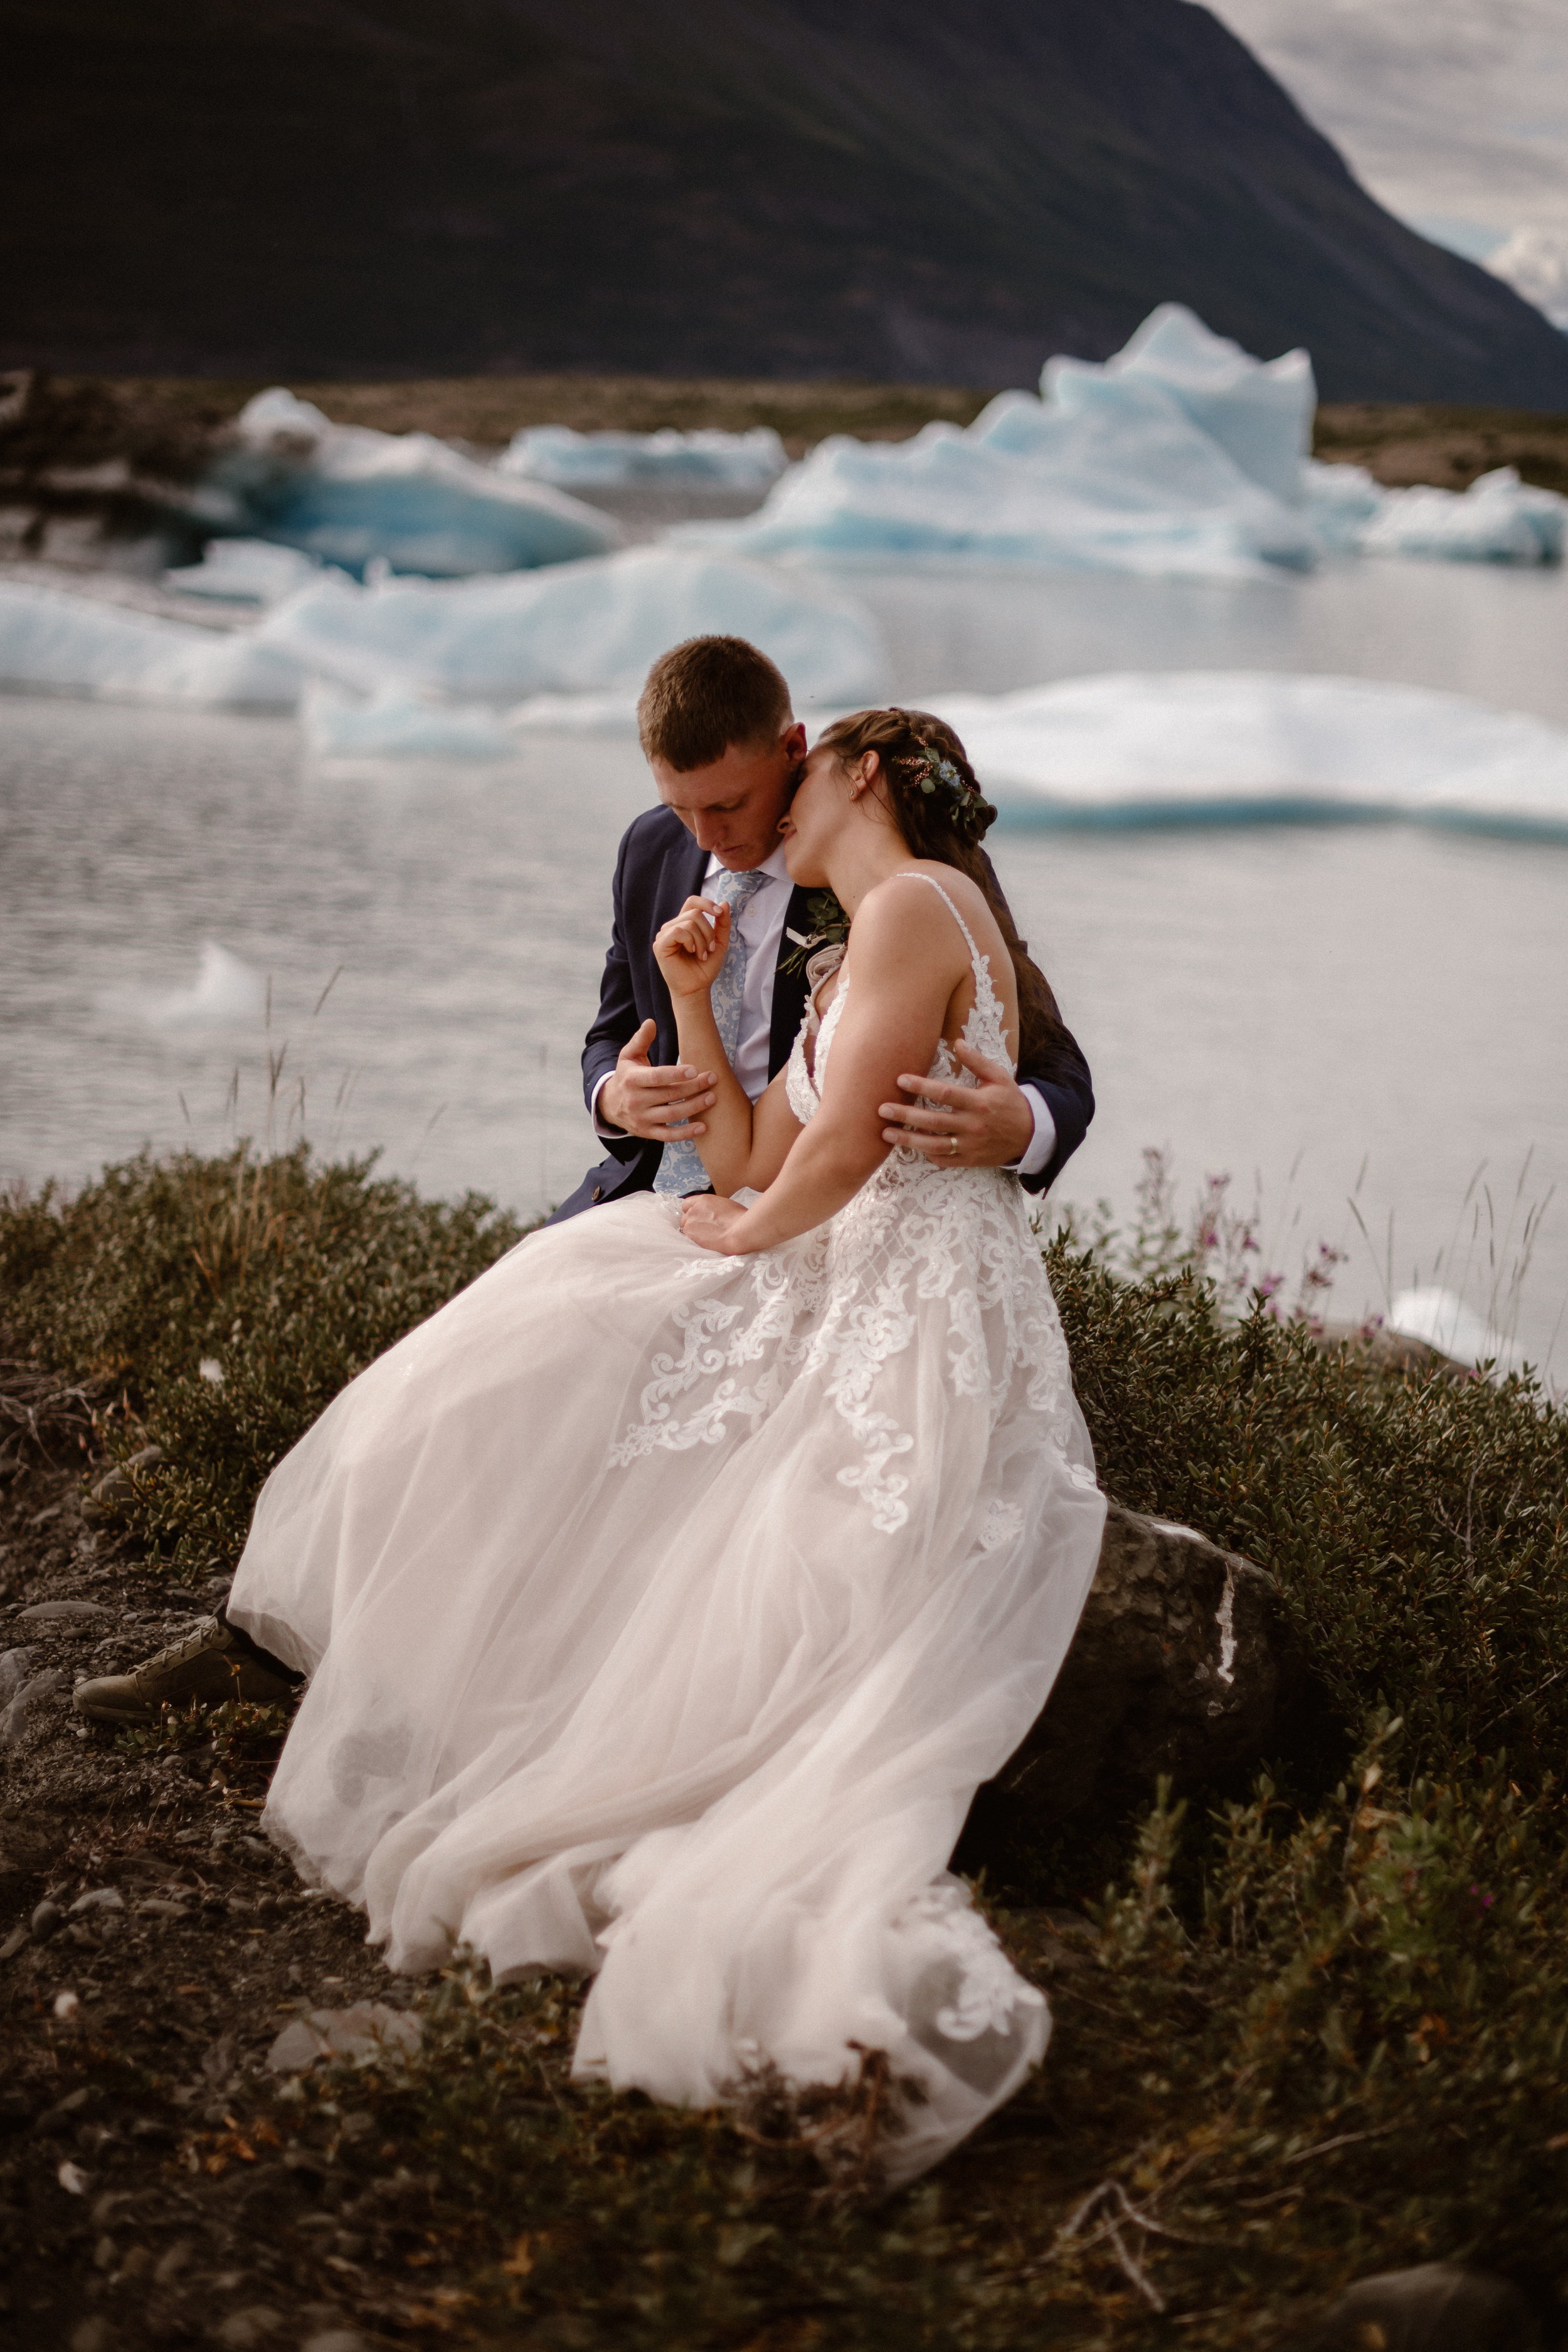 Jordyn and Connor, the bride and groom, cozy up to each other by the side of the glacial lake in these elopement pictures. This Alaska helicopter elopement story was captured by Adventure Instead, an elopement wedding photographer.